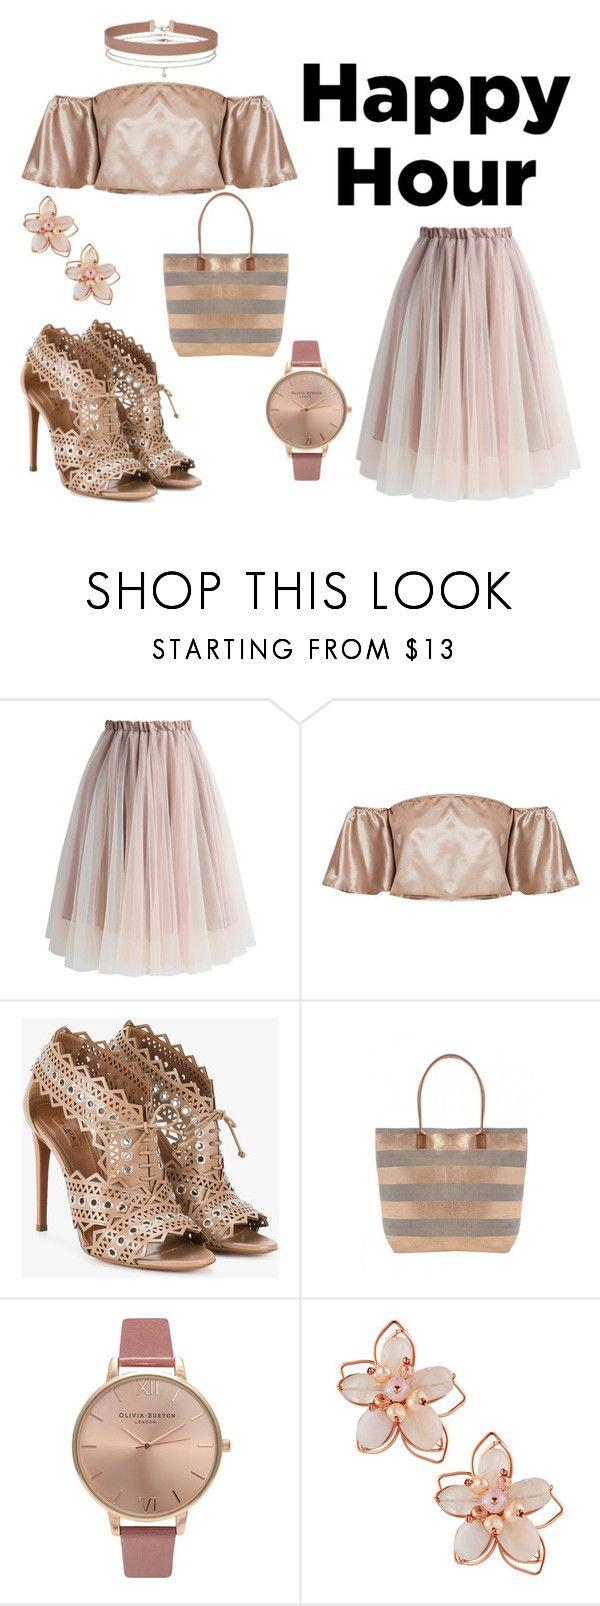 """#happyhour"" by hajer-bh ❤ liked on Polyvore featuring Chicwish, Alaïa, Olivia Burton, NAKAMOL and Miss Selfridge"